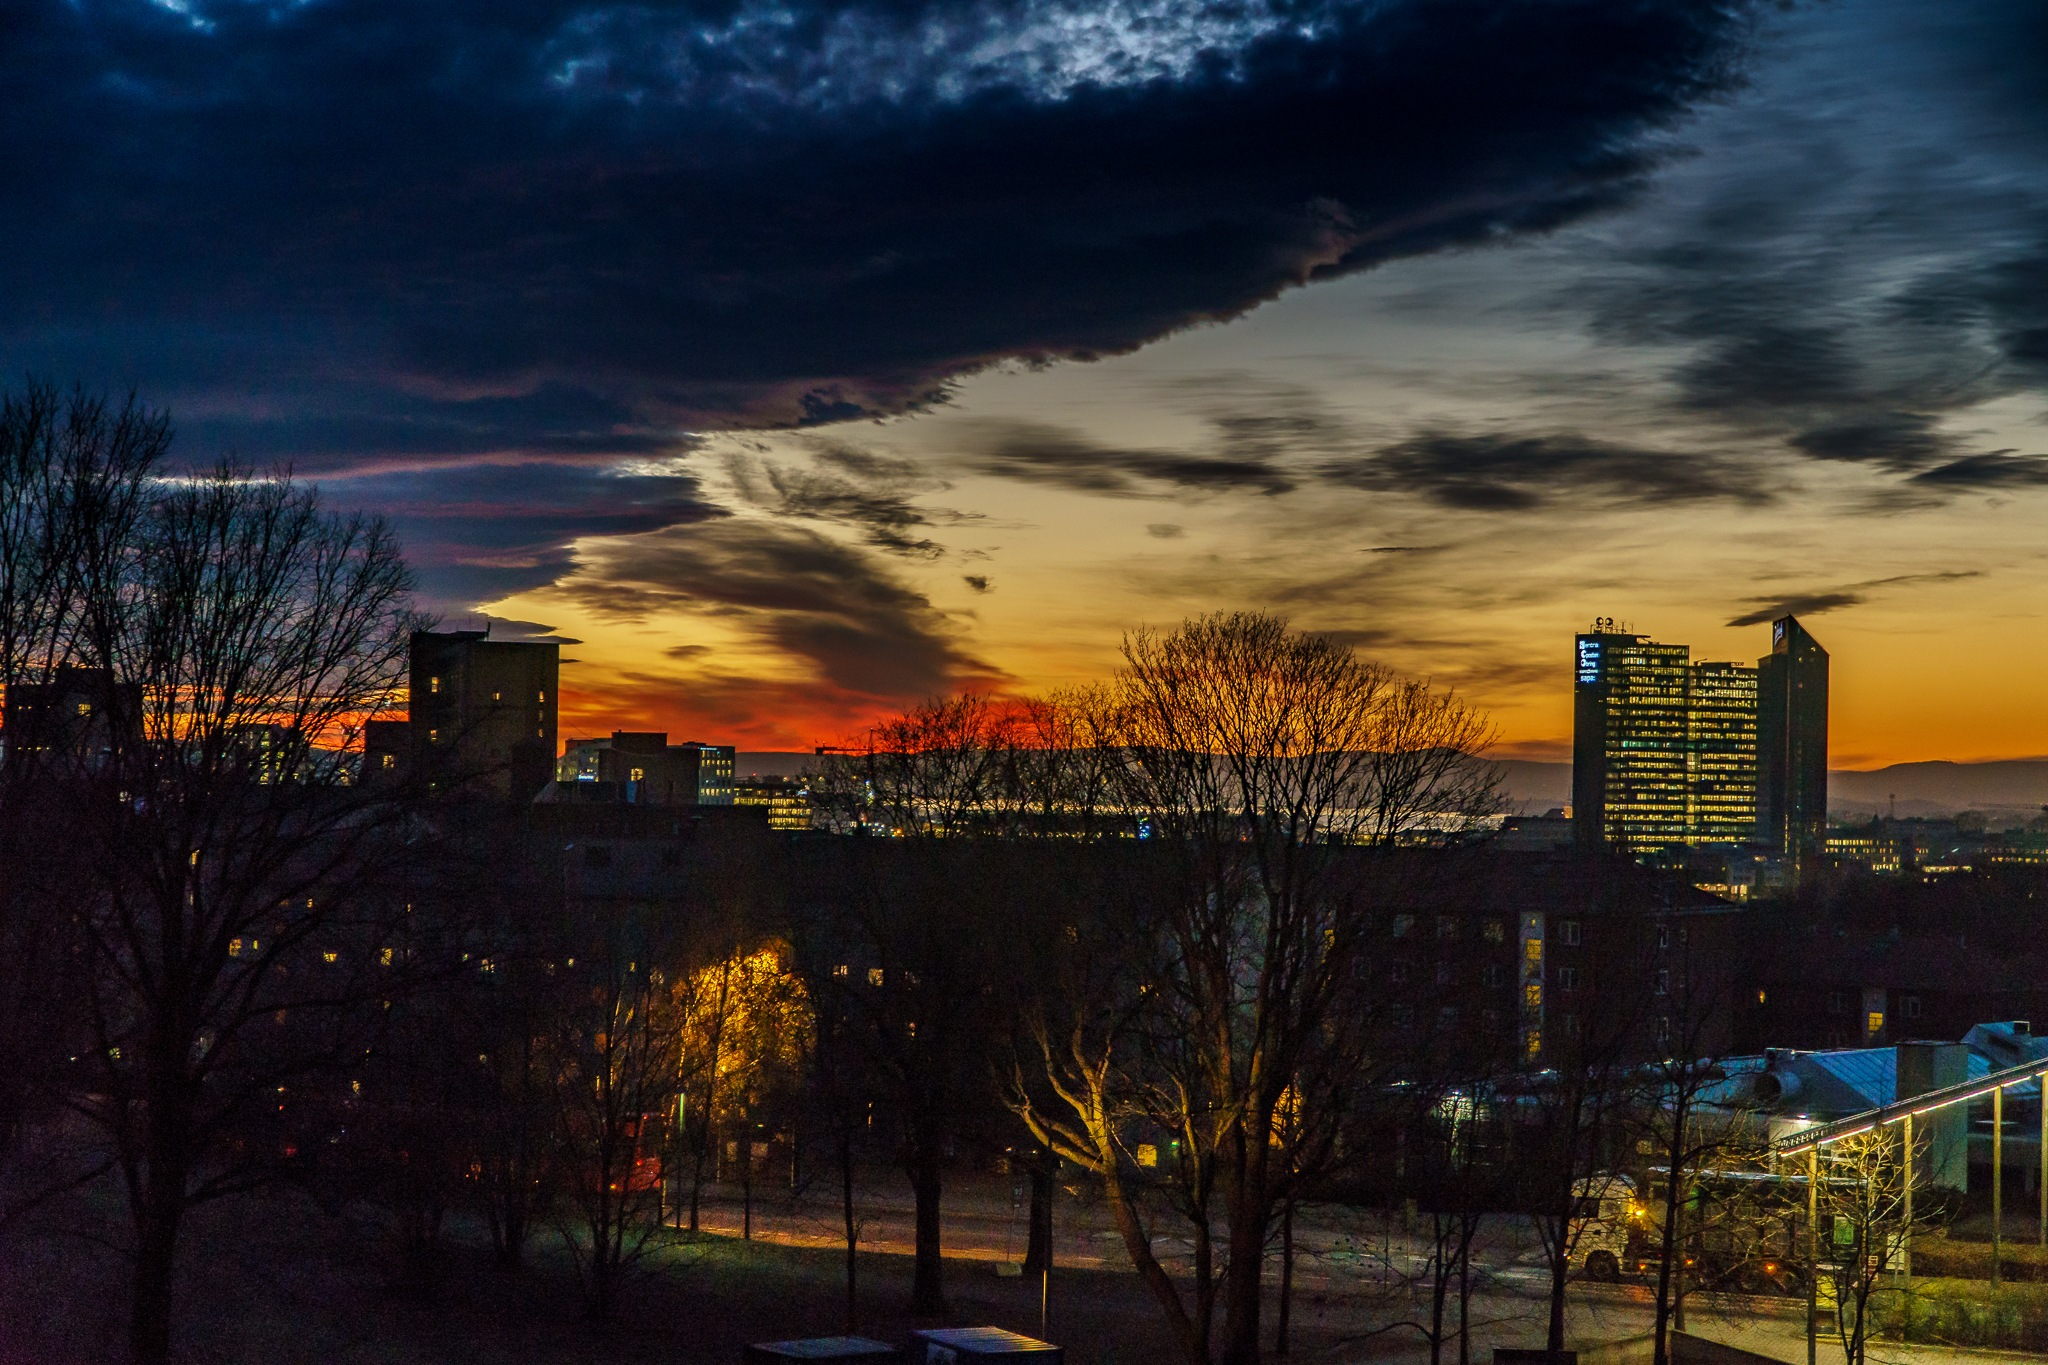 Sunset in Oslo by Jens-Chr.